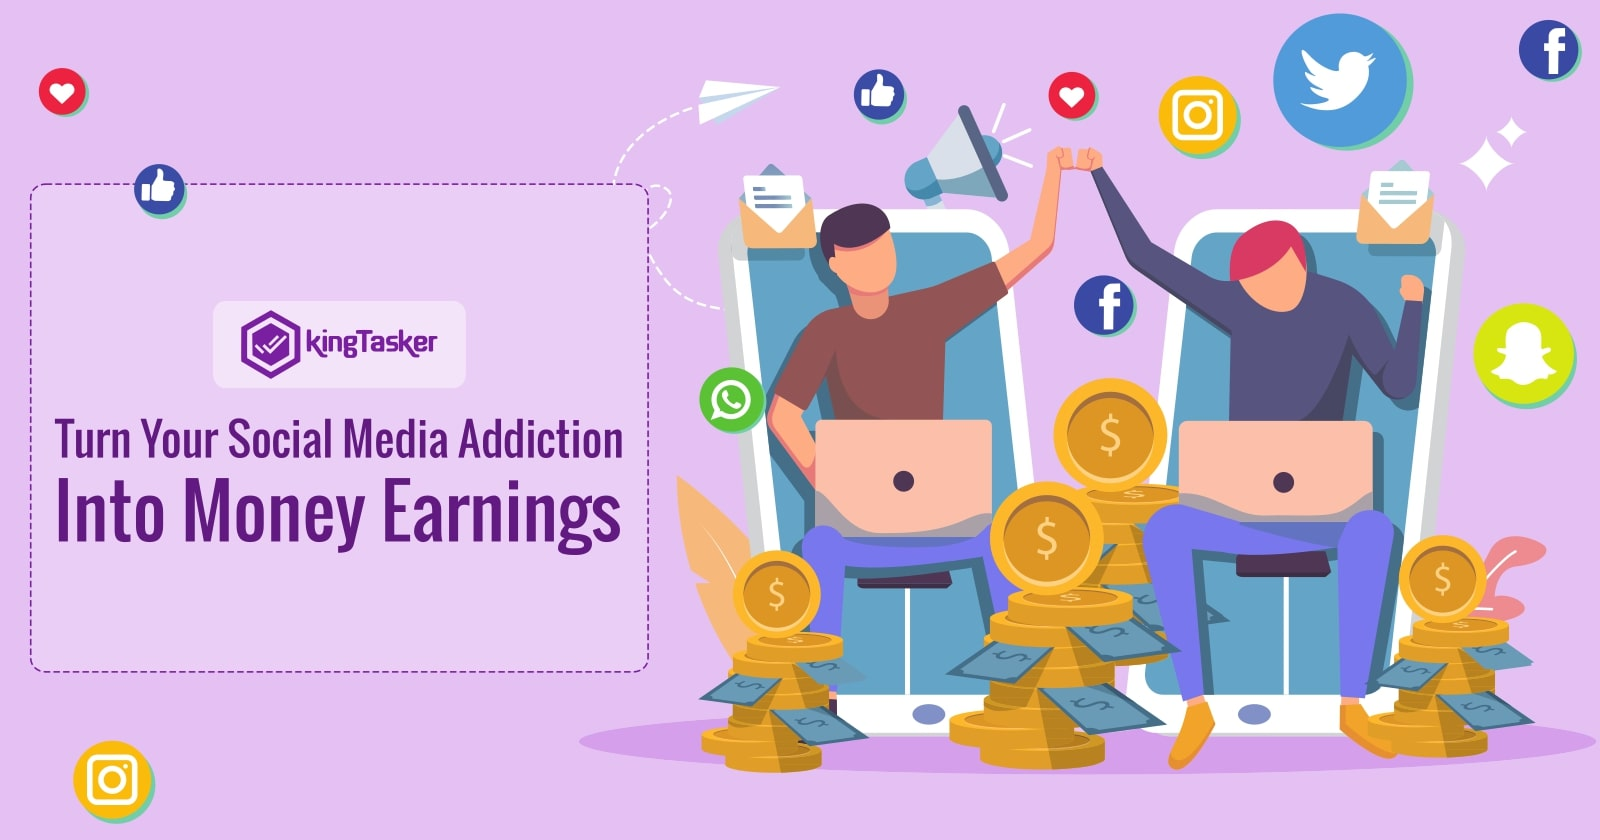 Turn Your Social Media Addiction Into Money Earnings